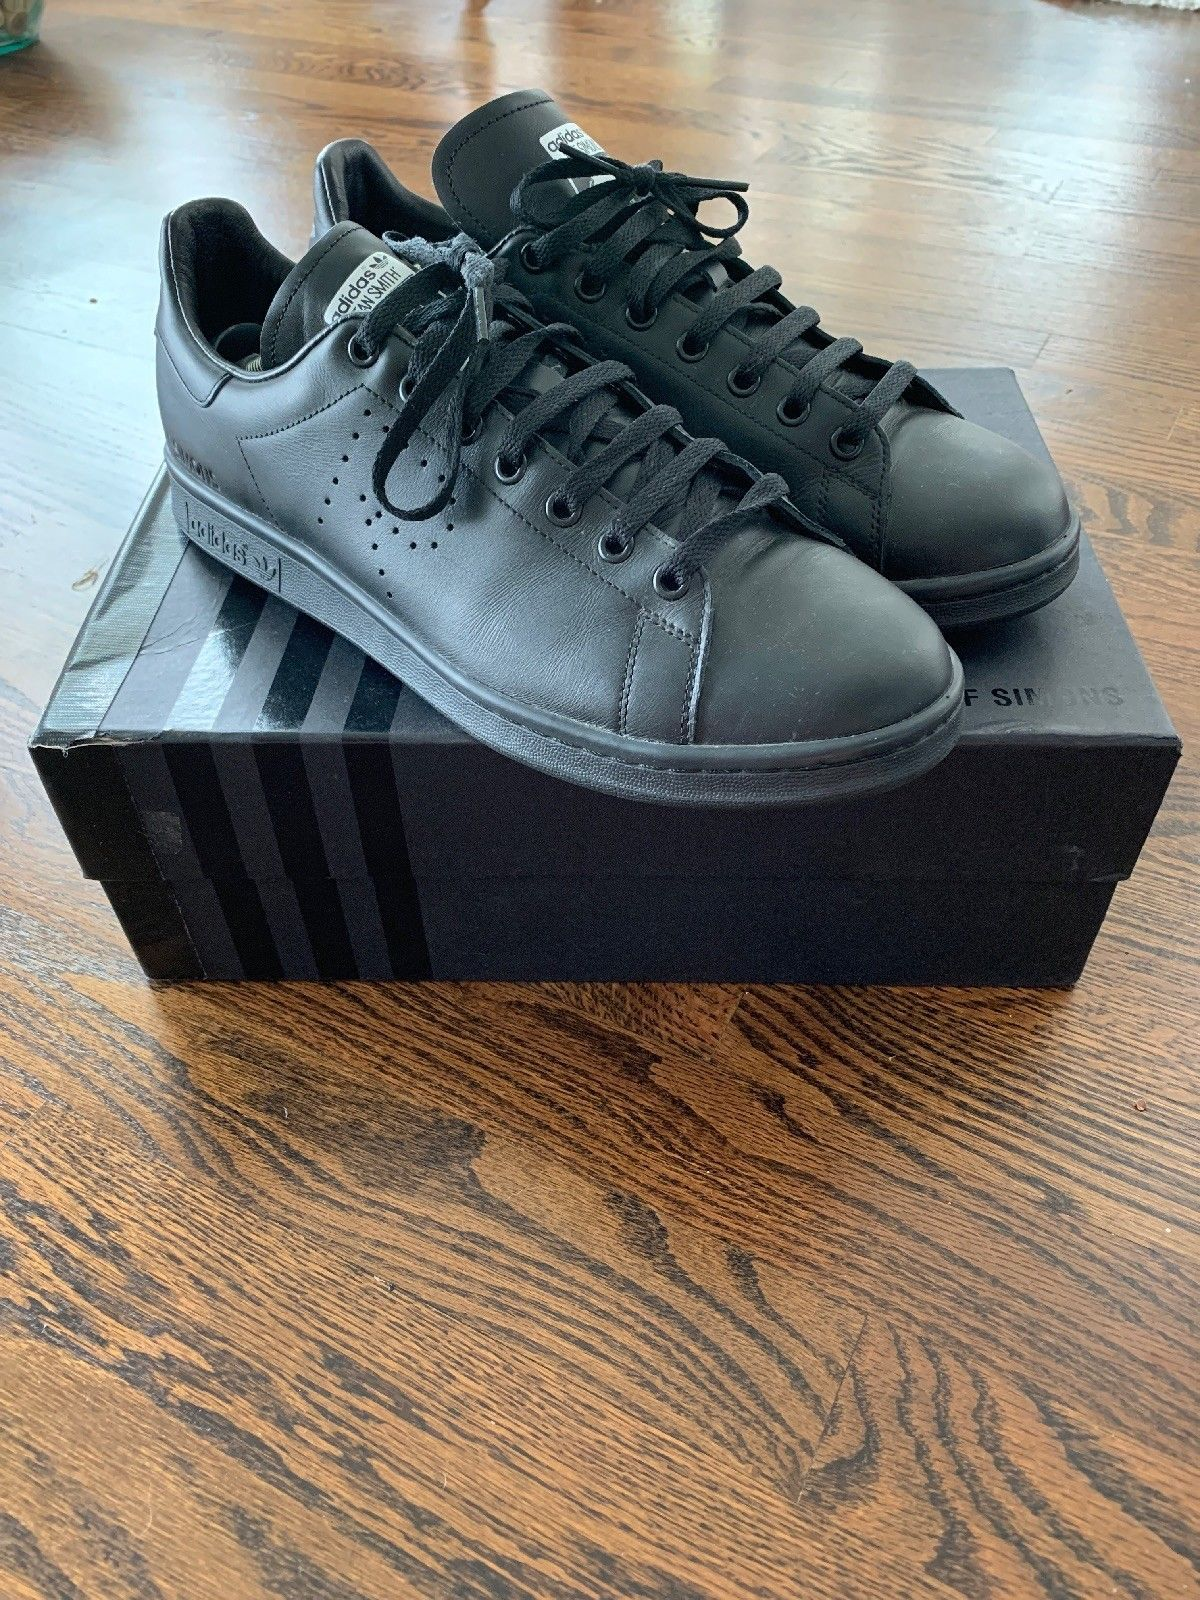 new arrival aab0b d383a Details about Adidas Raf Simons Stan Smith 11.5 NEW ...